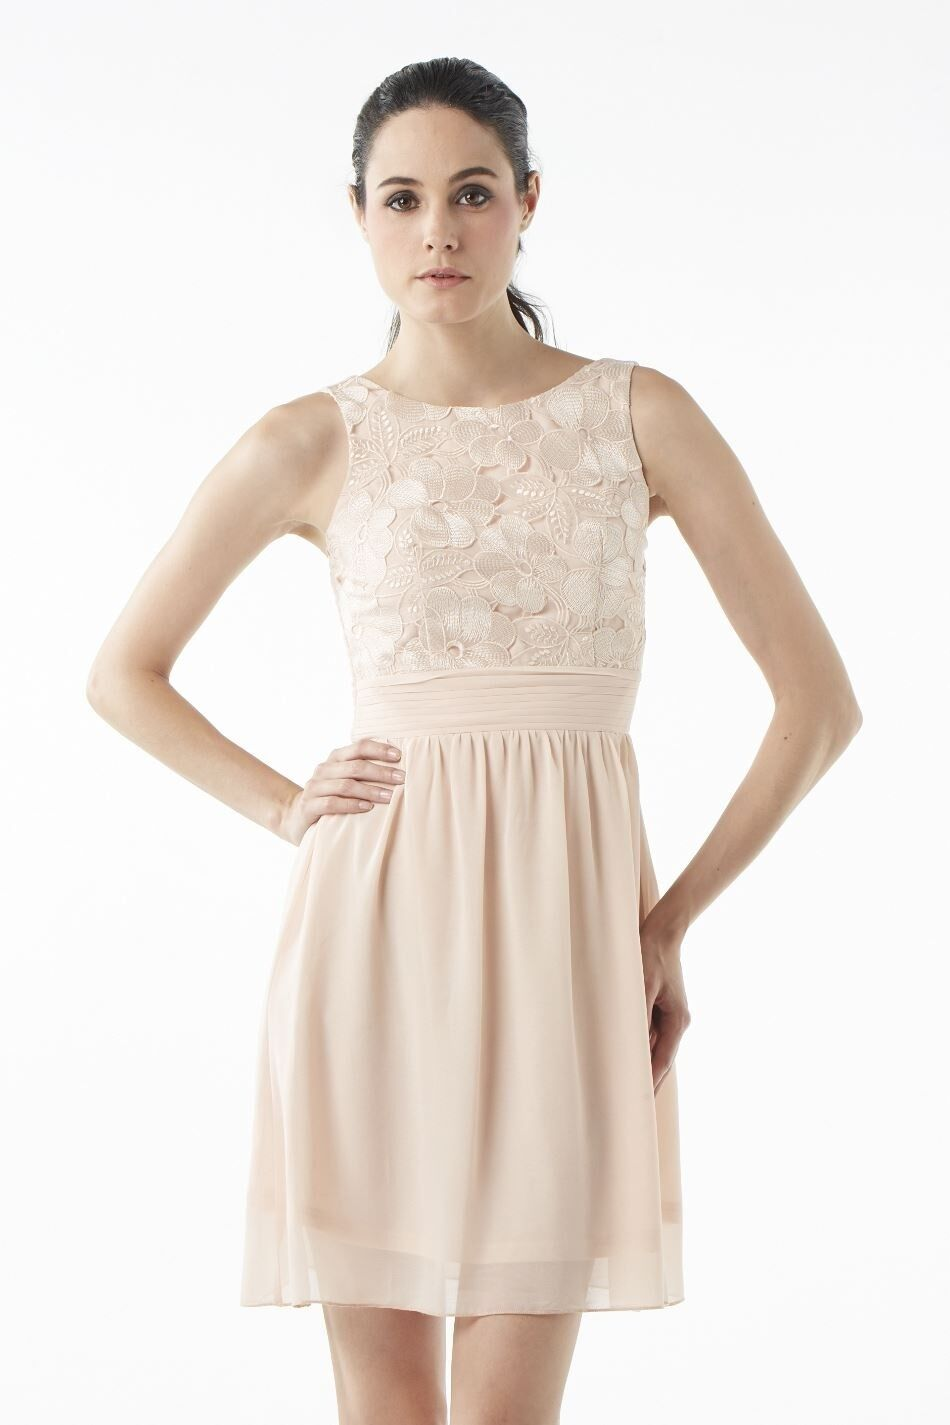 Chase7 Beige Floral Lace Party Flared Dress Gown (NEW) sizes 12 or 14 - .00